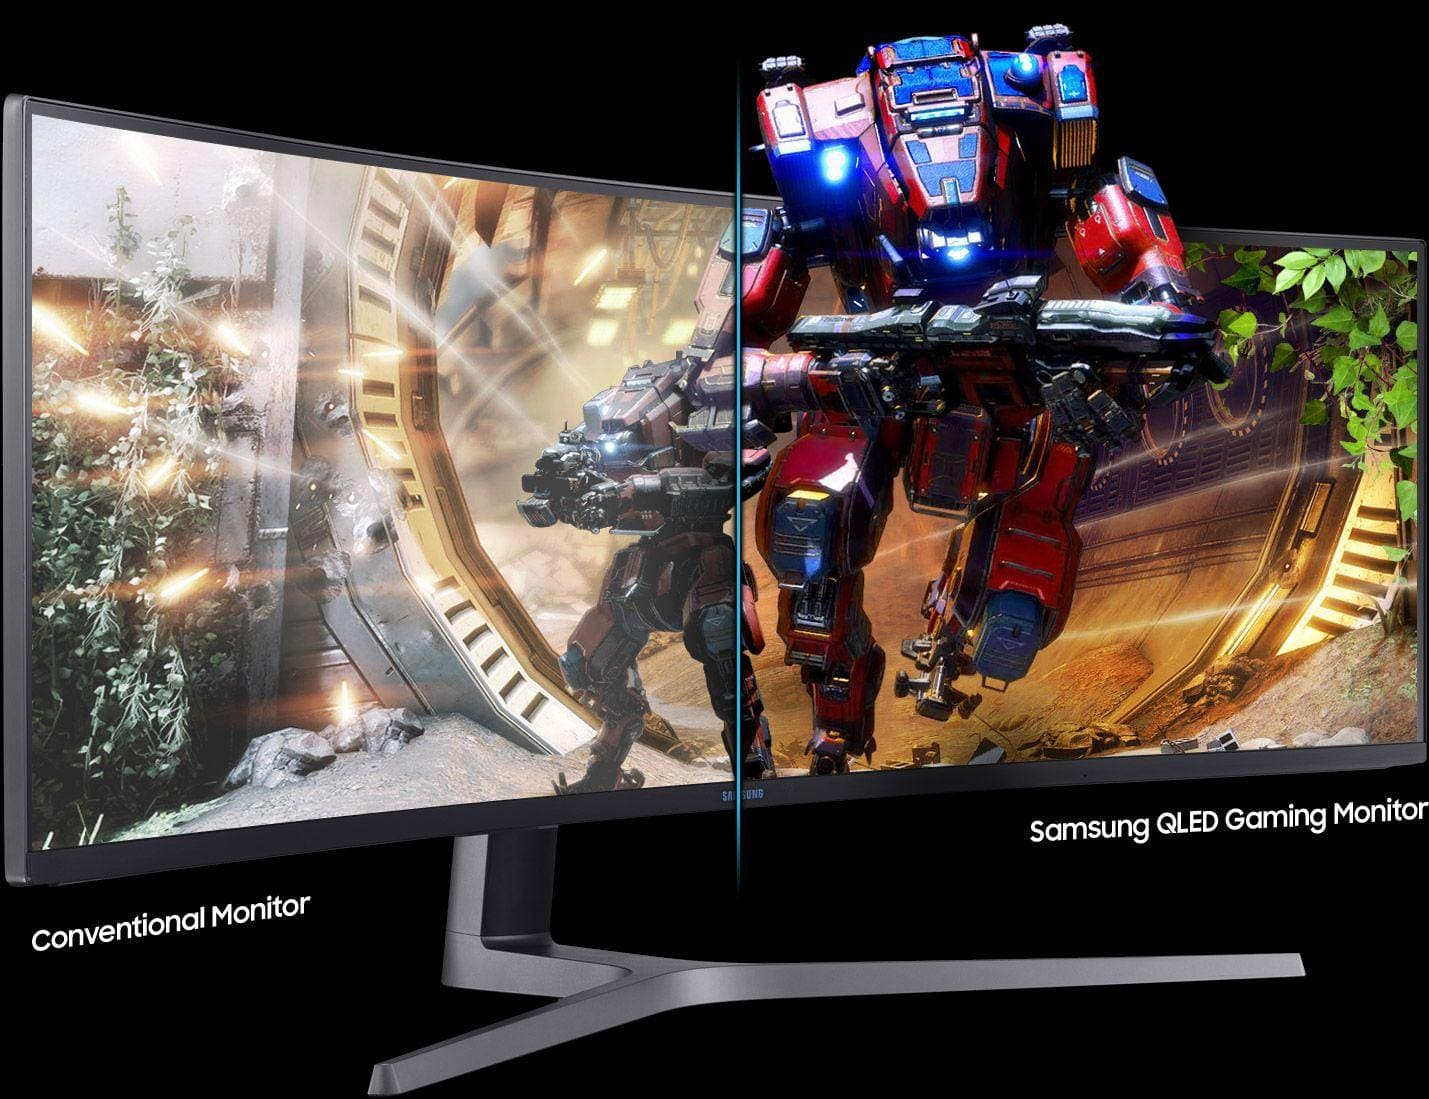 Still-cut image comparing conventional monitor with Samsung QLED gaming monitor, which is featured by new metal quantum dot